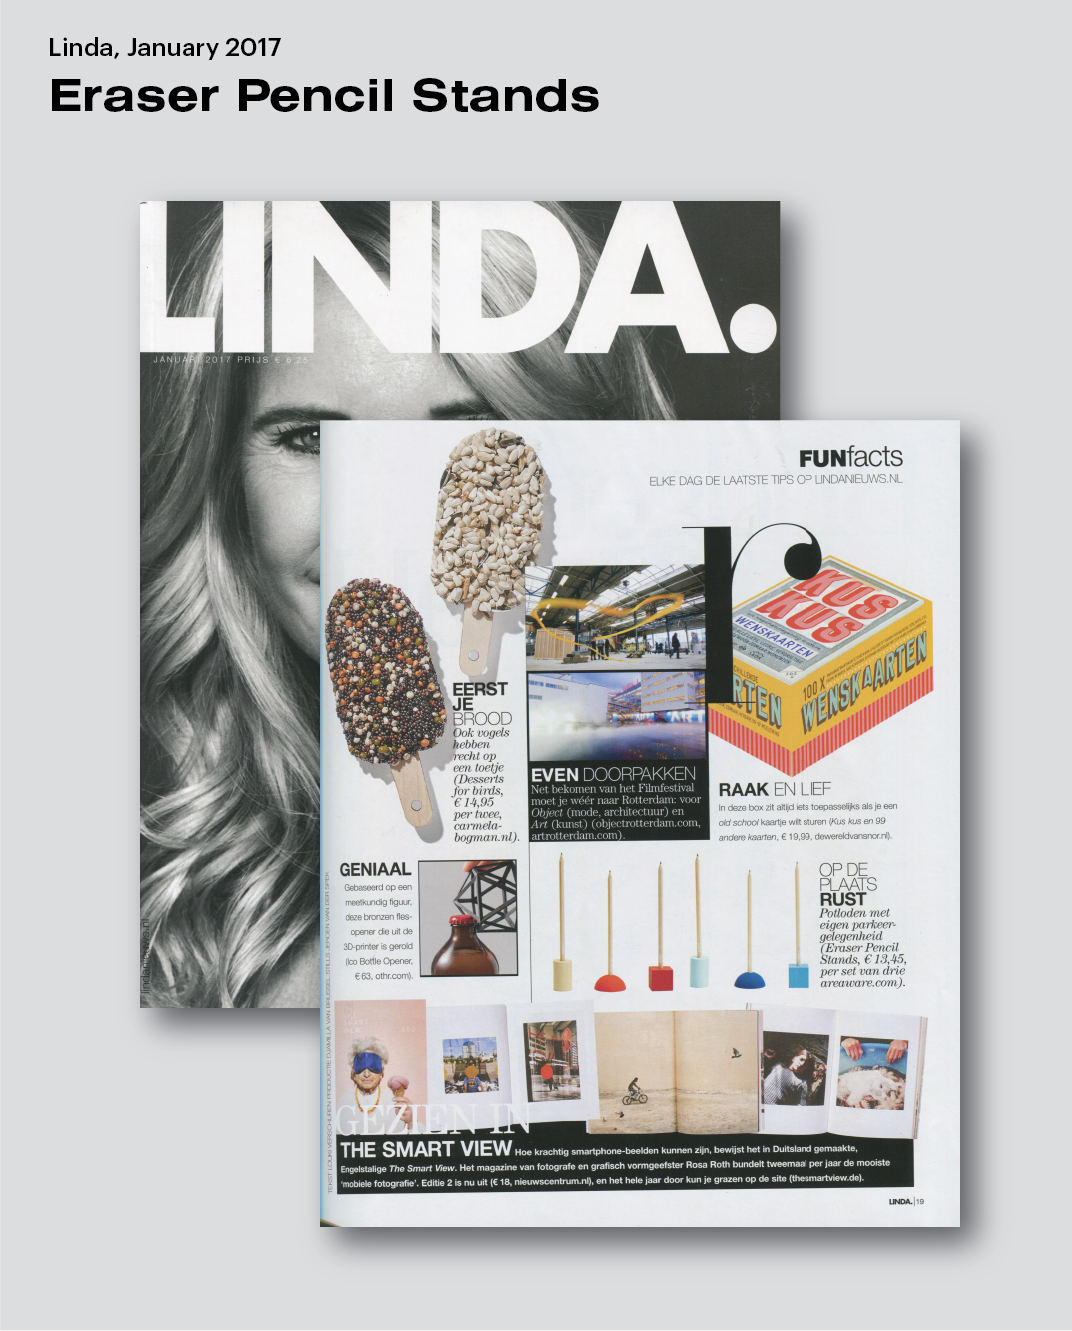 Areaware | Eraser Pencil Stands featured in LINDA